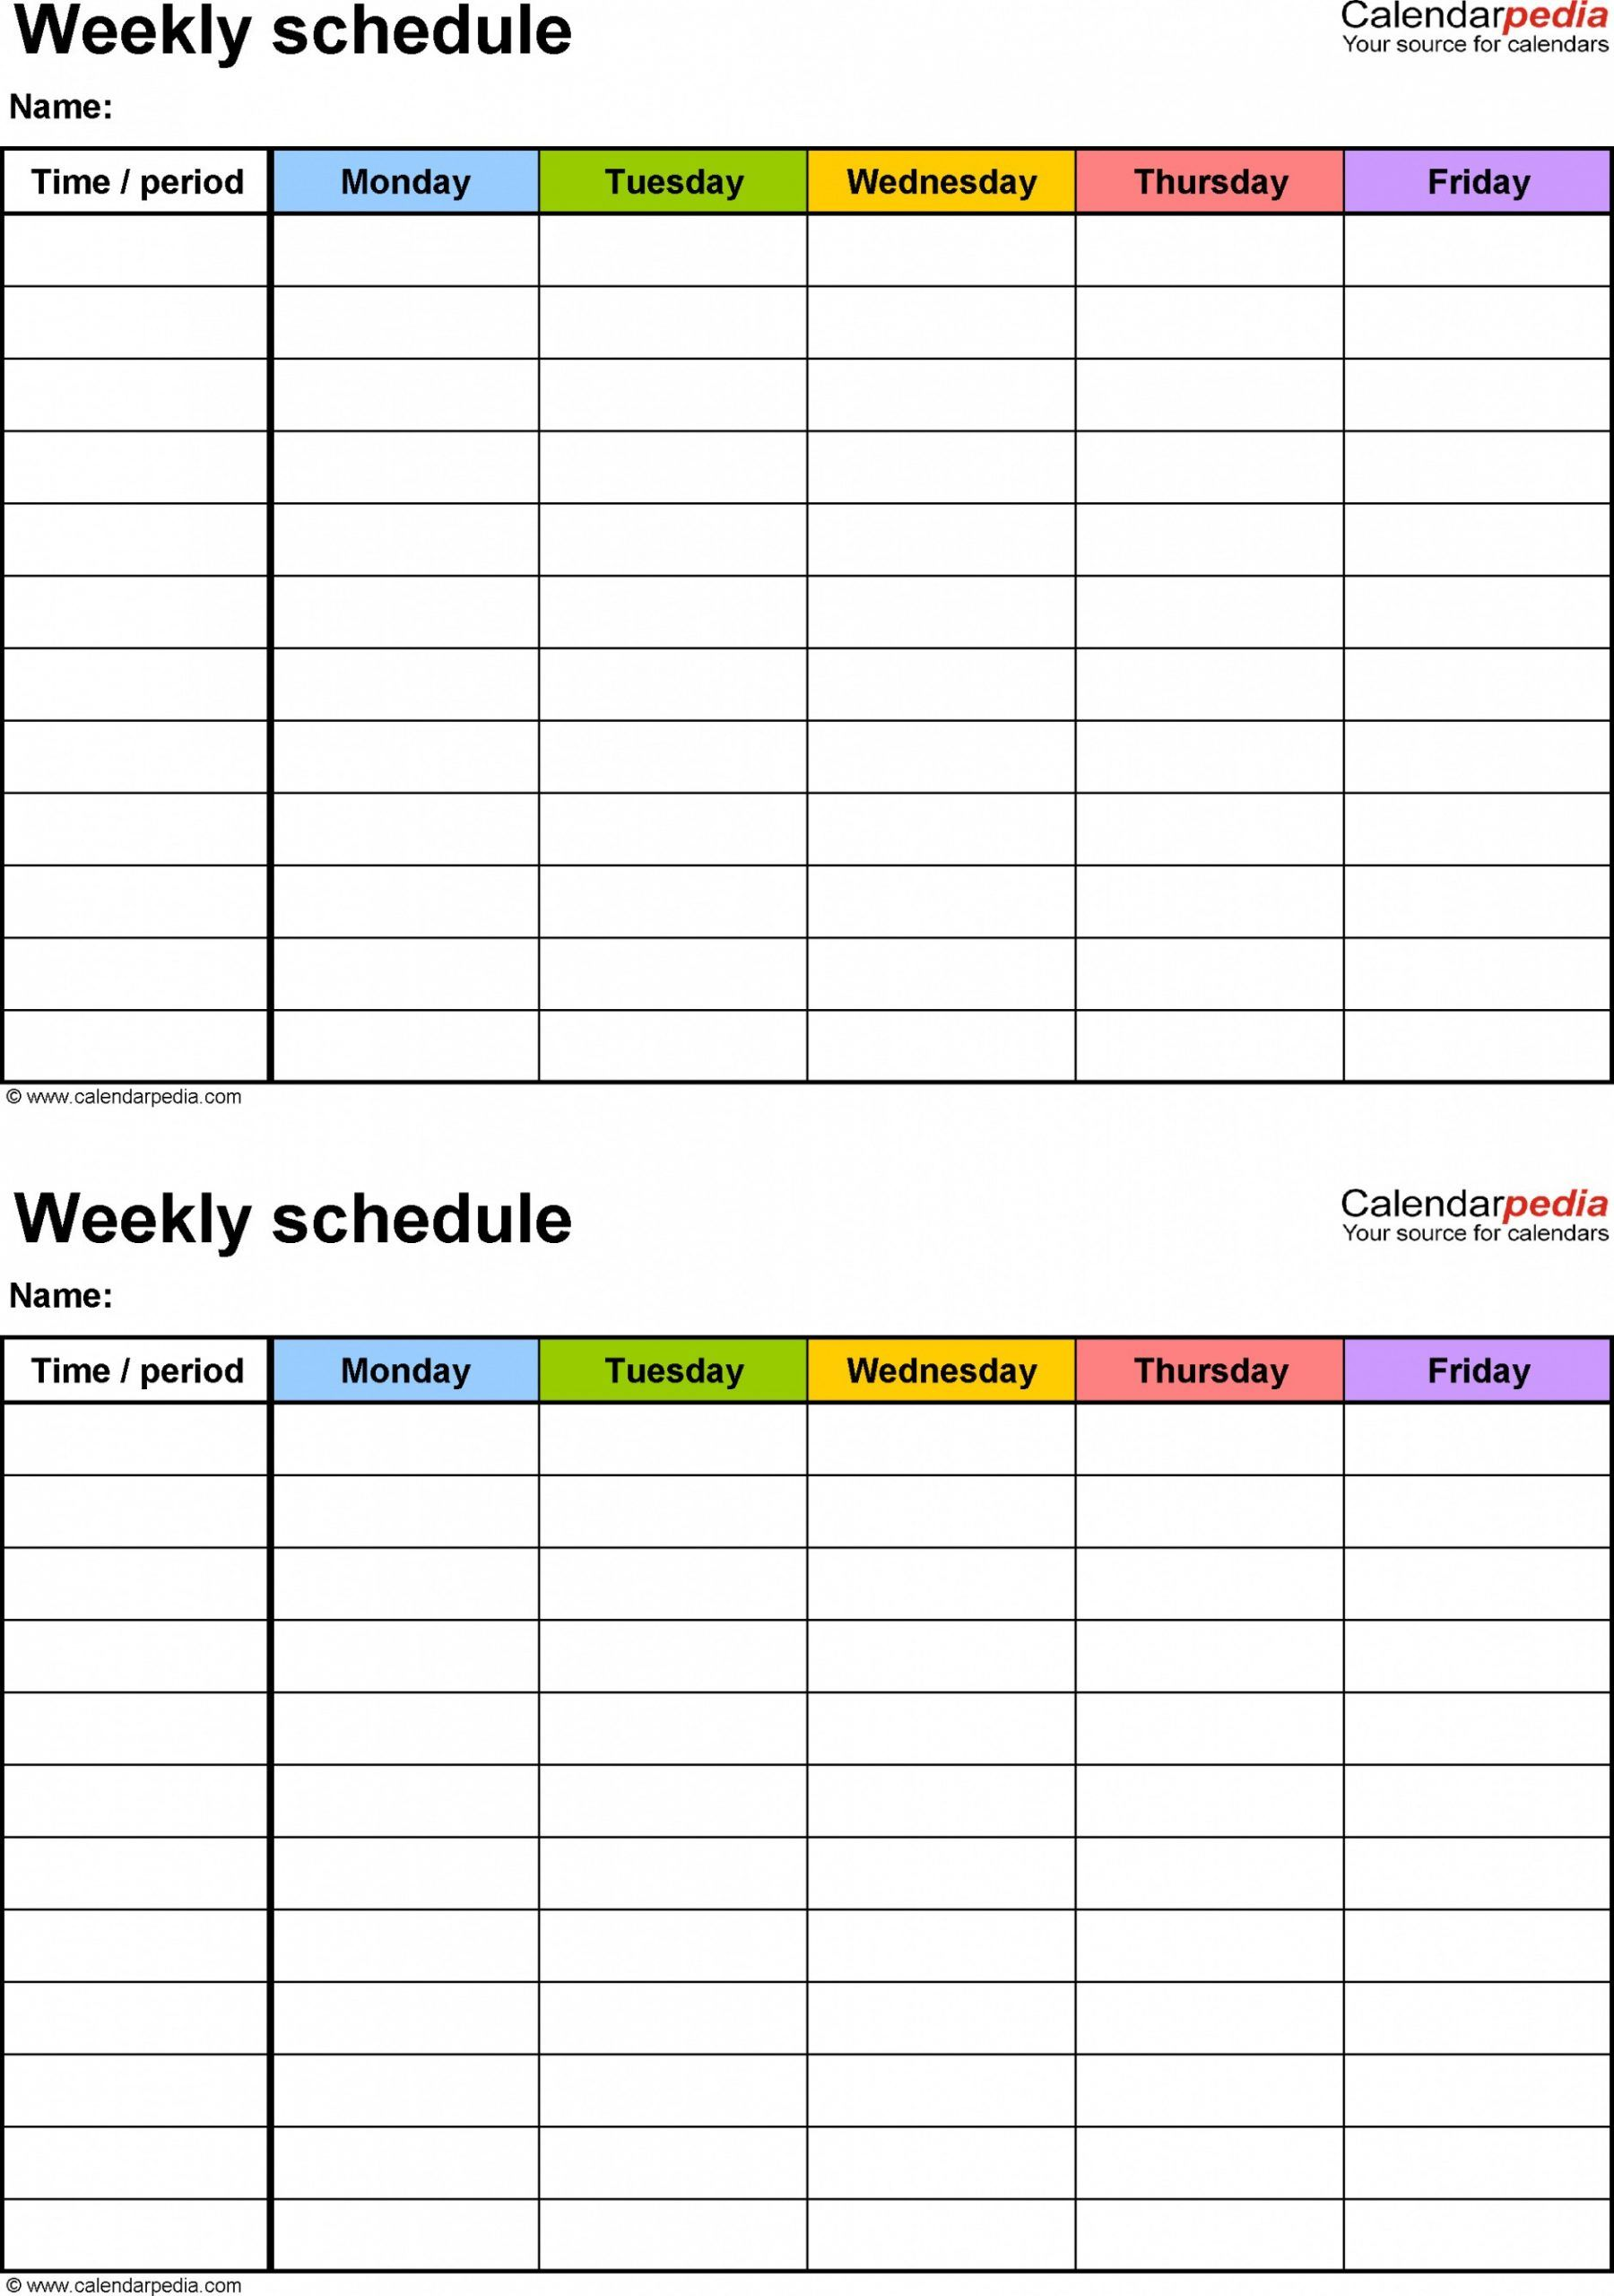 Class Schedule Baylor The Latest Trend In Class Schedule Baylor in